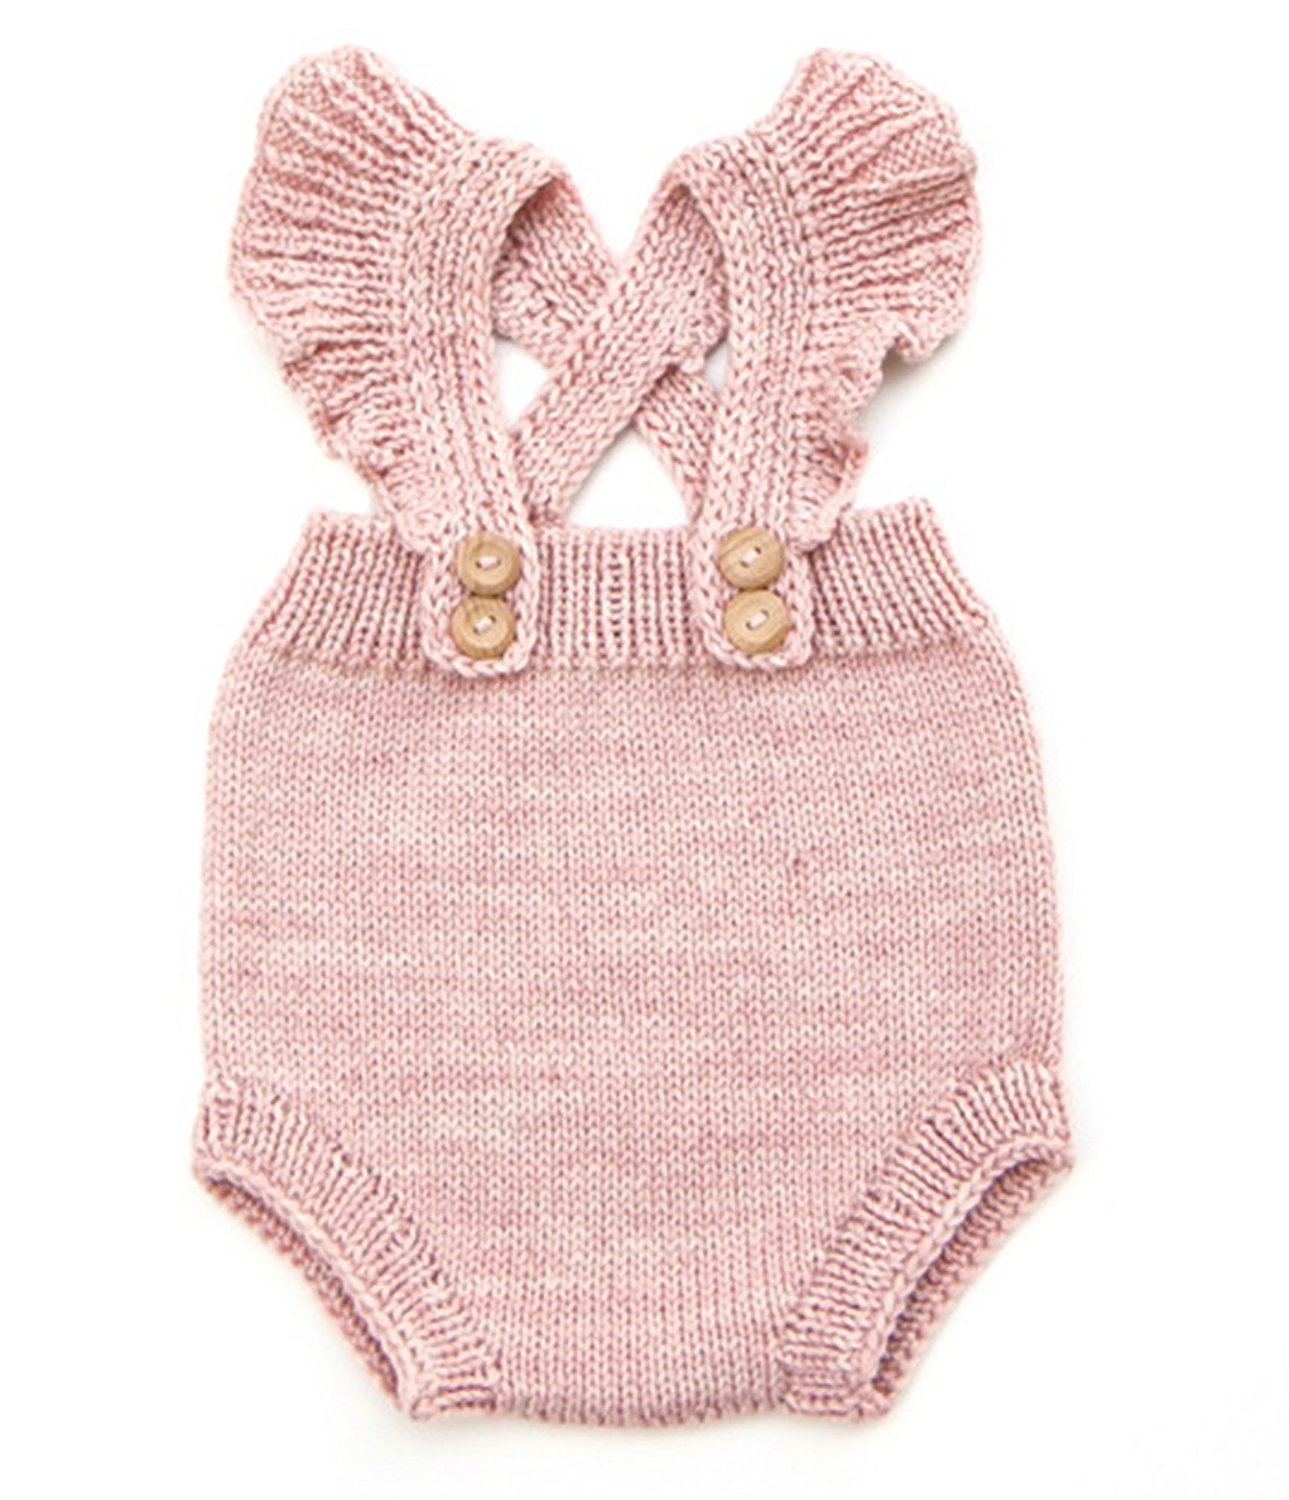 Baby Girls Knitted Romper Cross Bandage Ruffles Jumpsuit